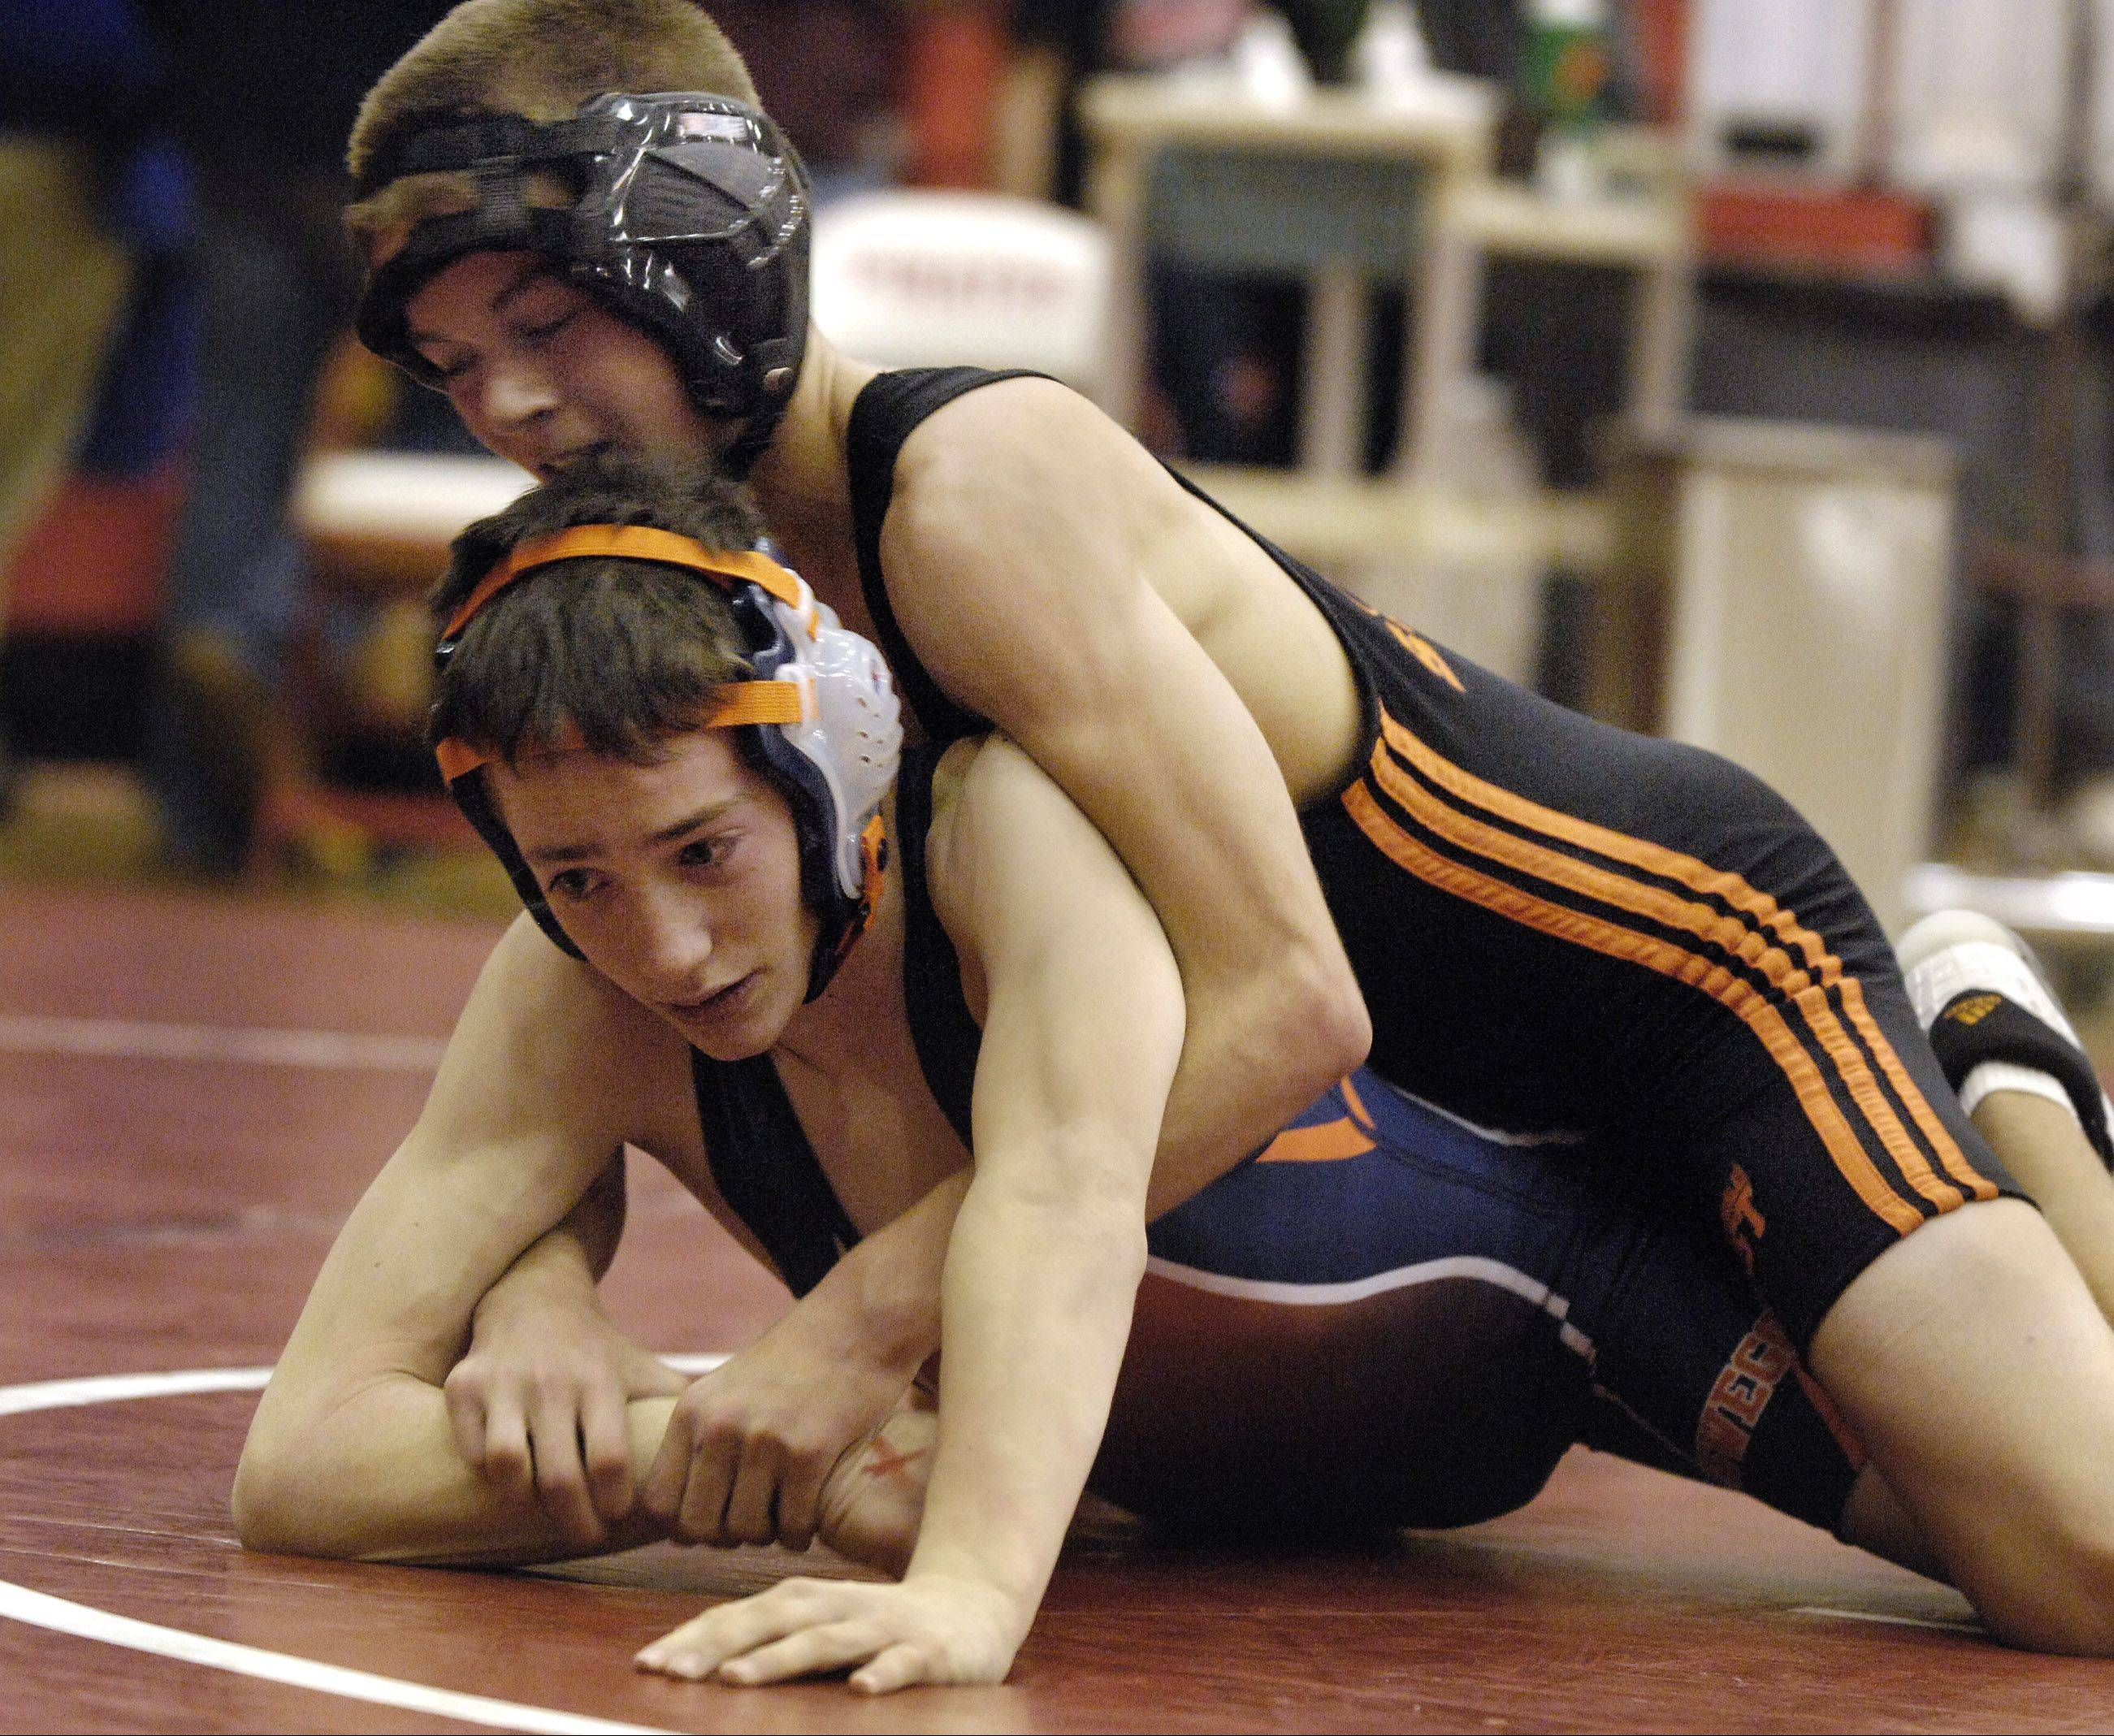 St. Charles East's Brad Kearbey, top, pictured earlier in his high school career, is up to 160 pounds where he has a 20-7 record for the 15-1 Saints.